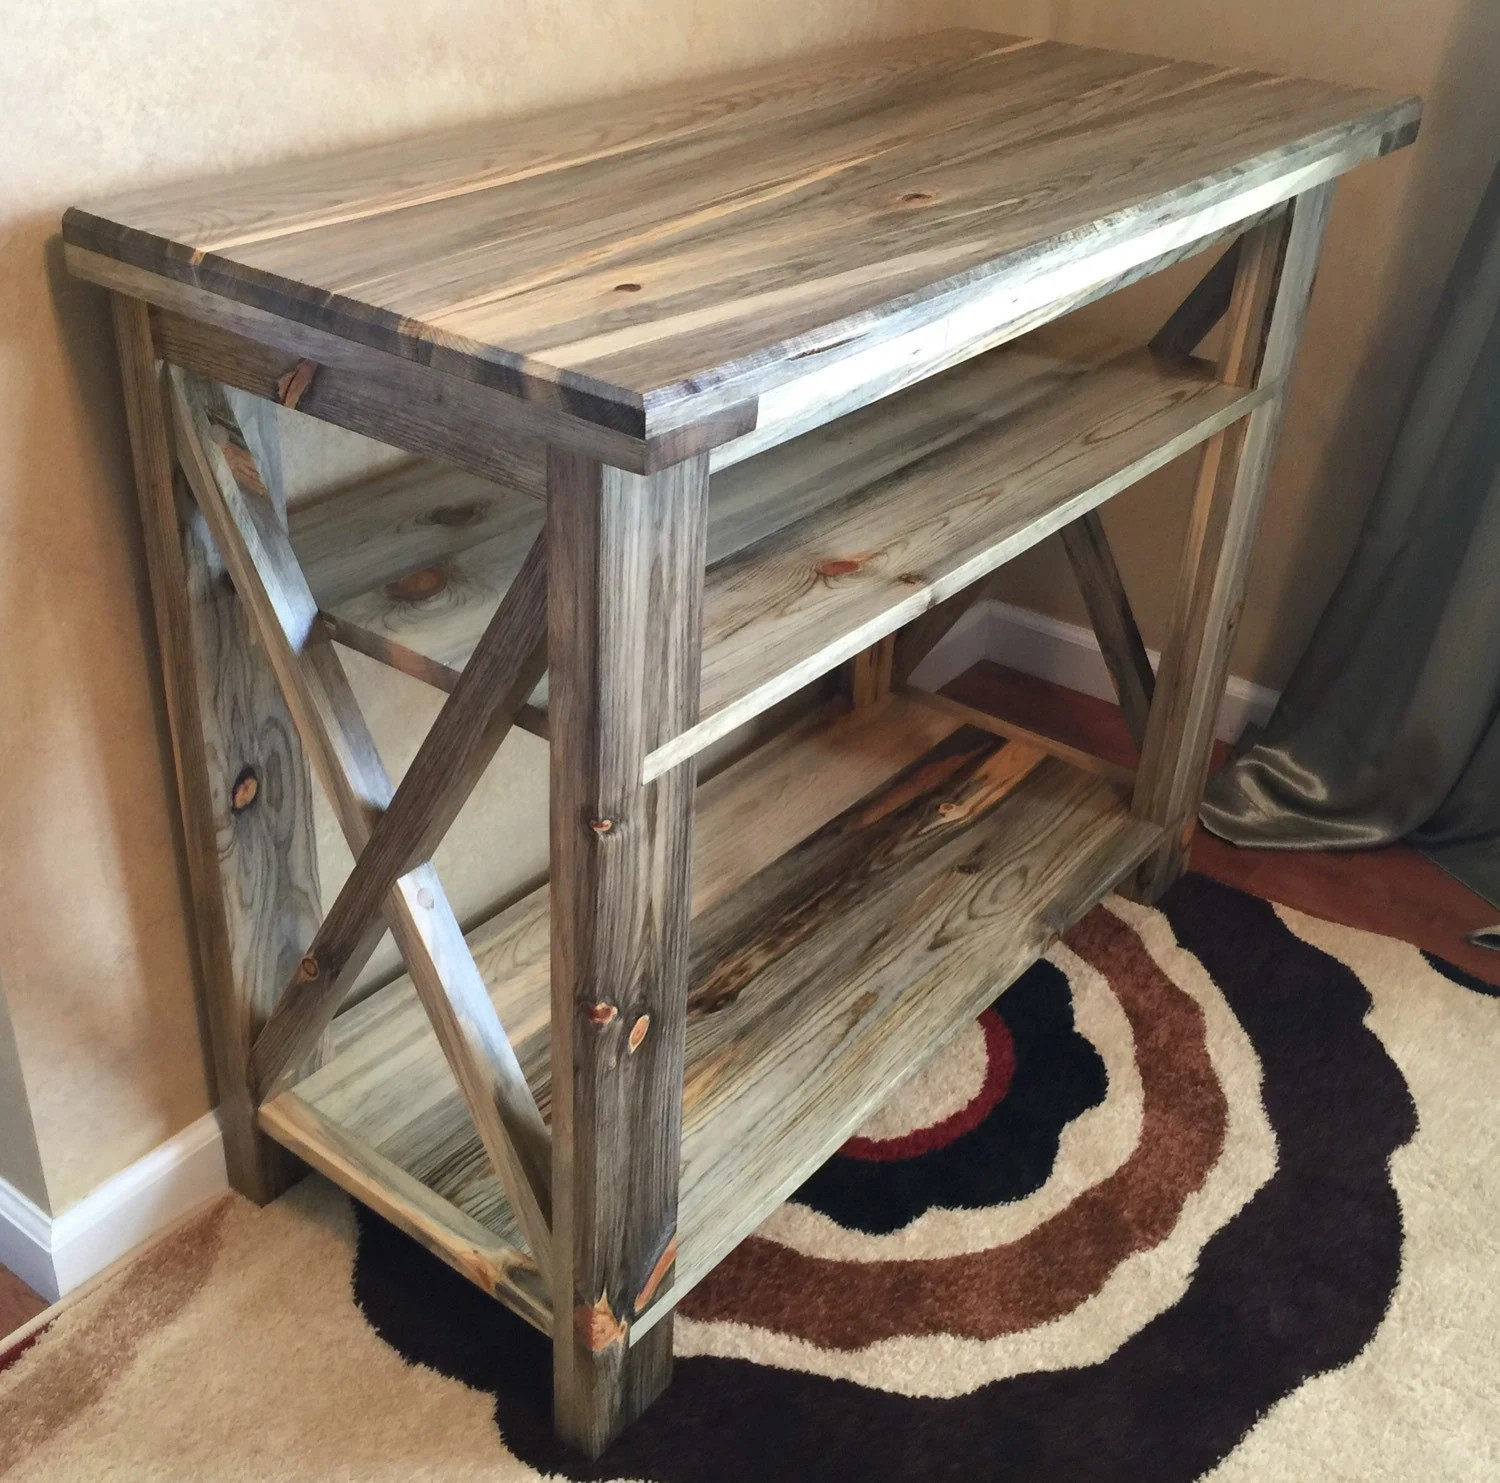 title | Rustic Foyer Table